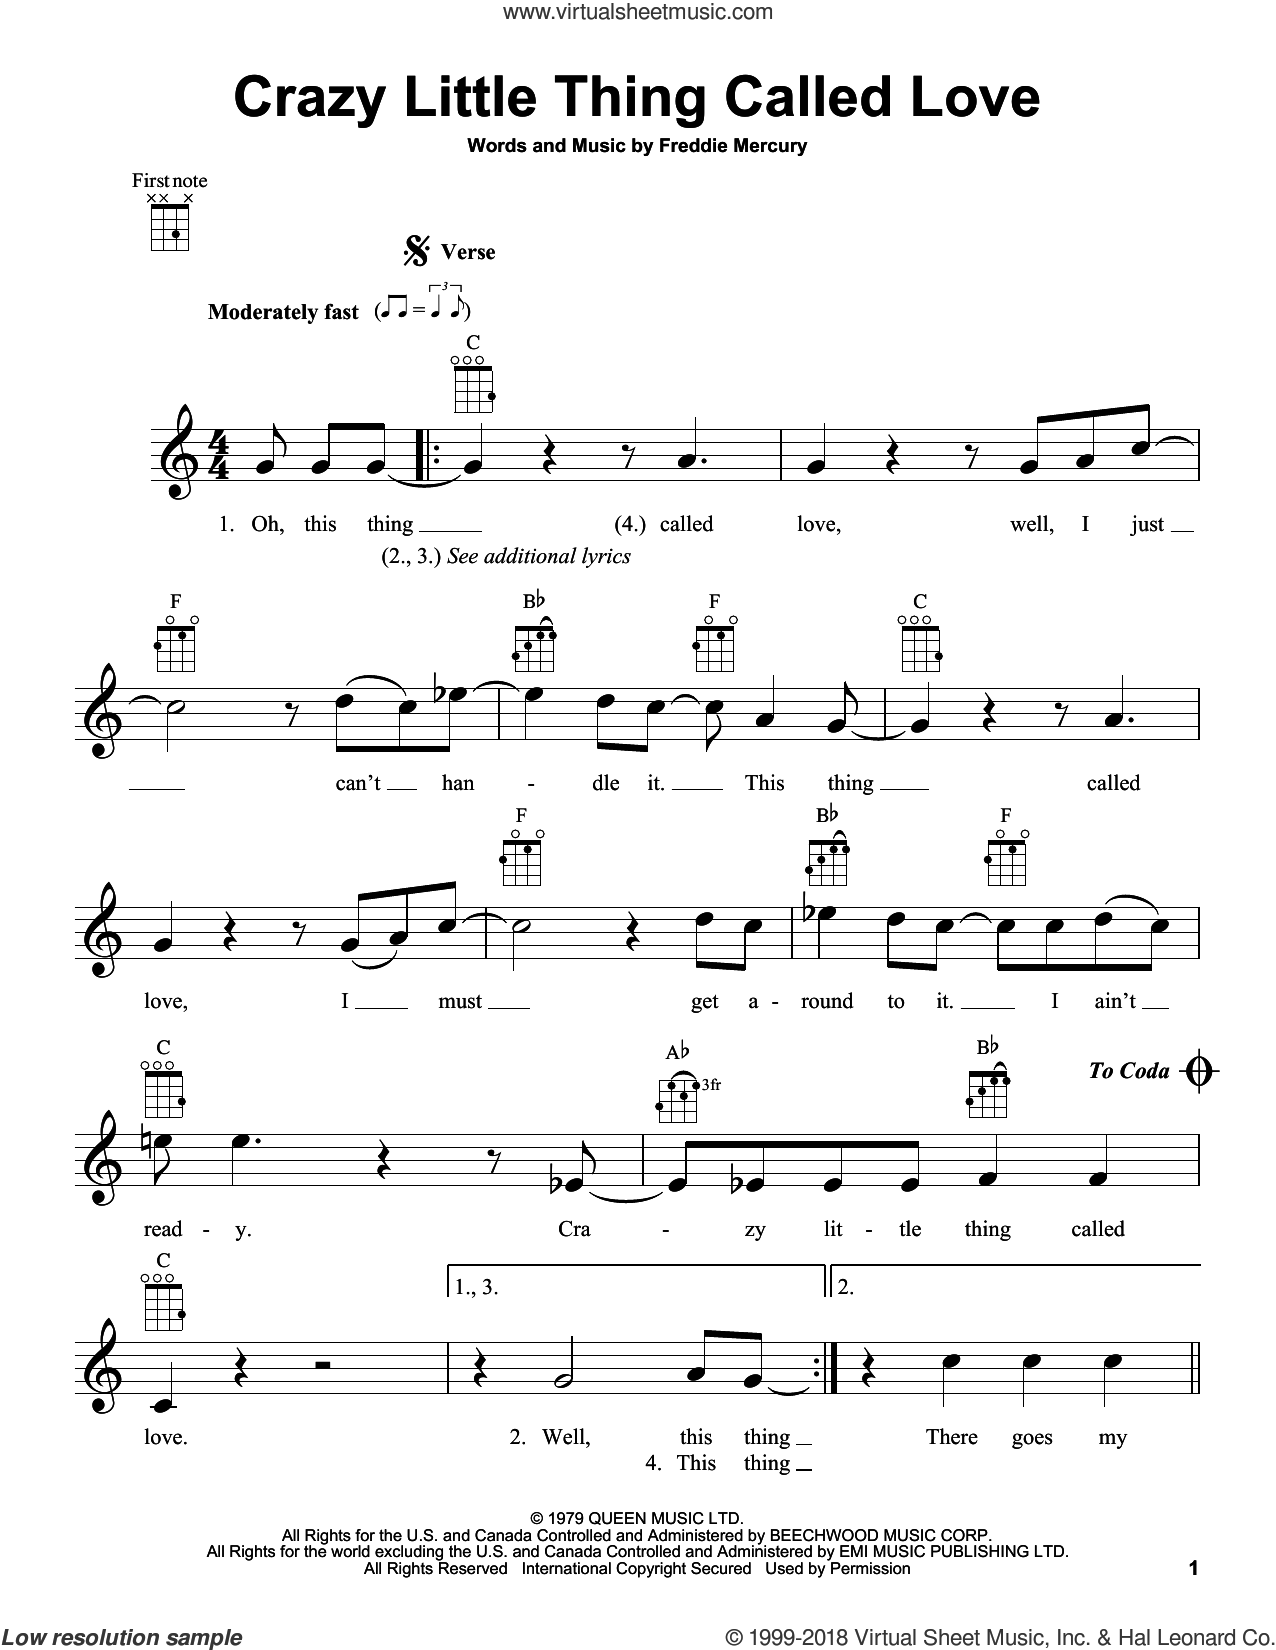 Crazy Little Thing Called Love sheet music for ukulele by Queen, Dwight Yoakam and Freddie Mercury, intermediate skill level